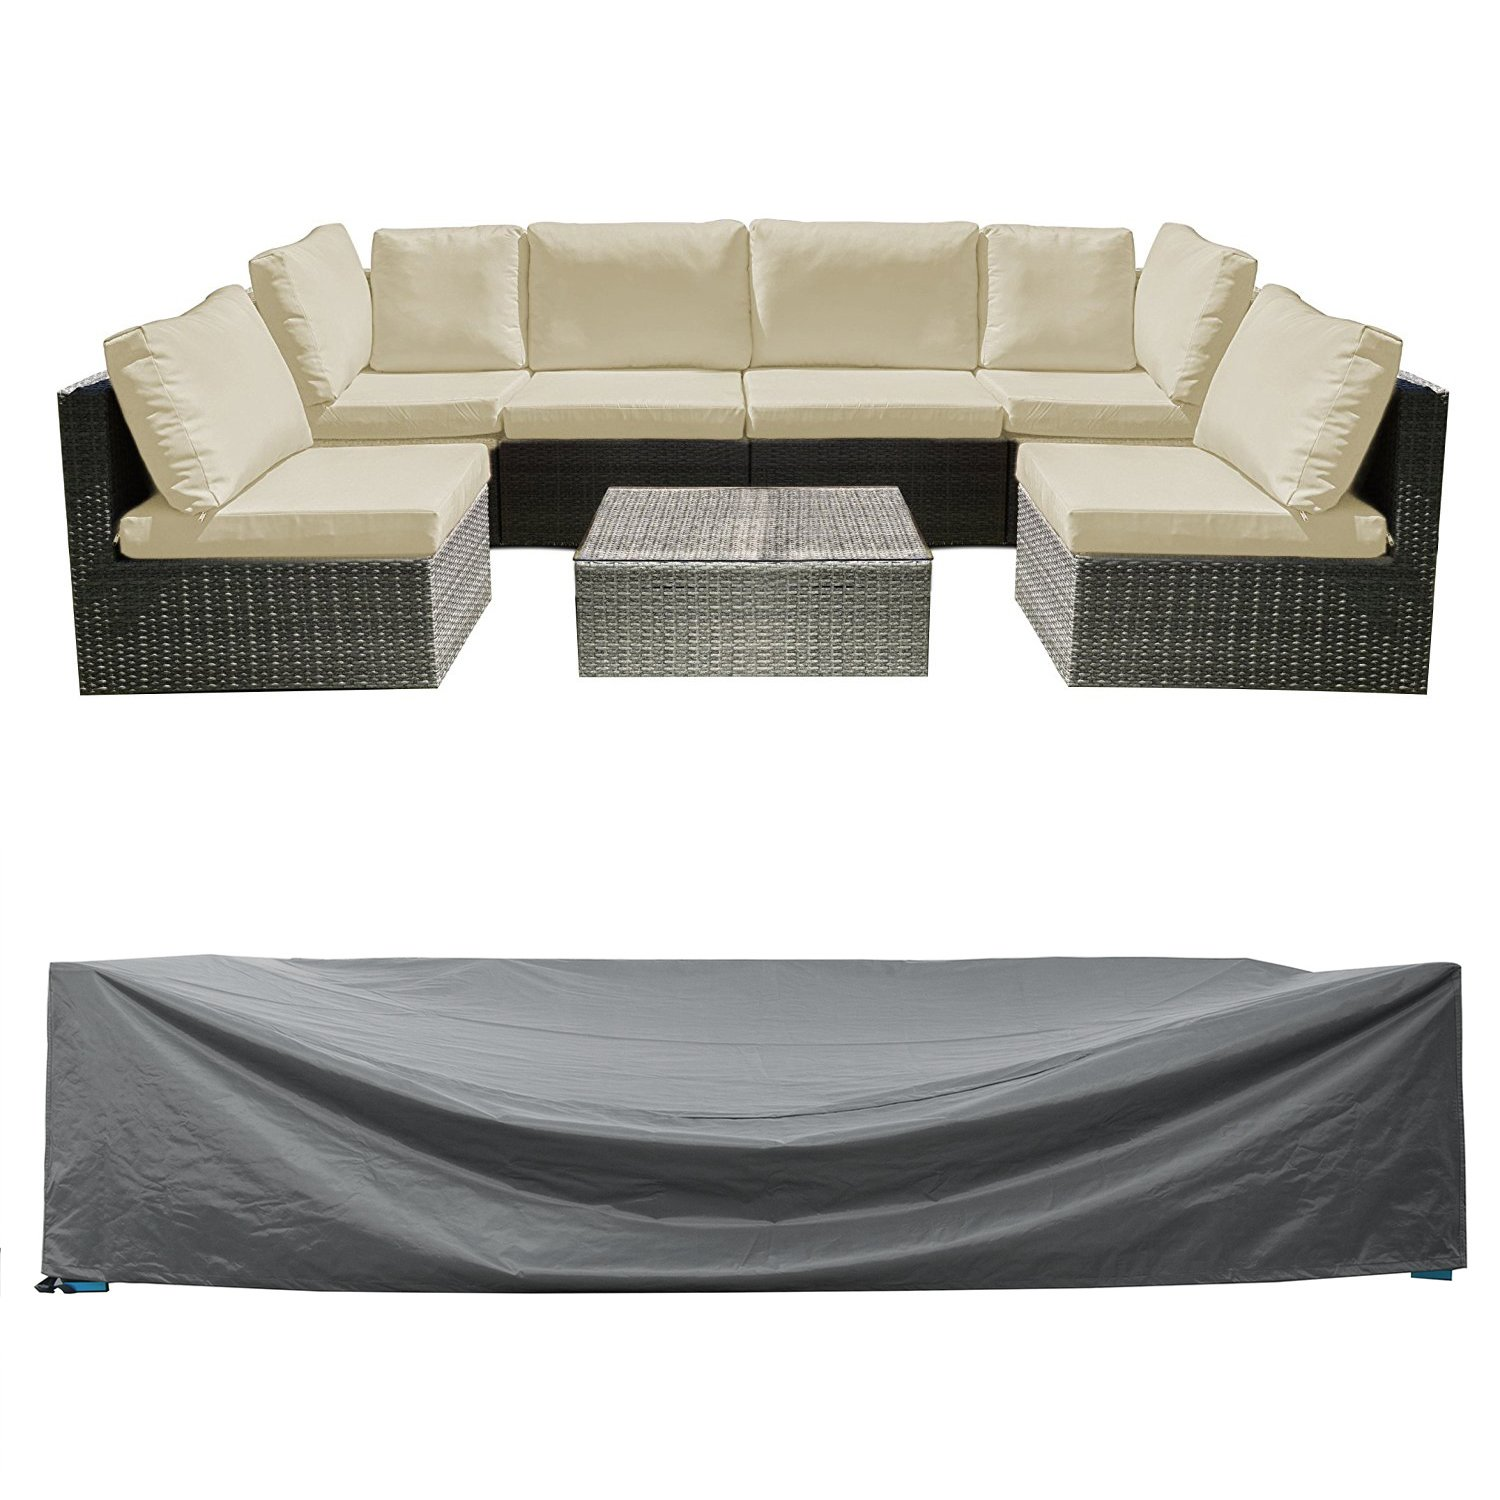 Patio Sectional Sofa Set Cover Outdoor Furniture Covers Water Resistant Outdoor Table and Chair Covers Durable Heavy Duty 126'' L x 64'' W x 29'' H